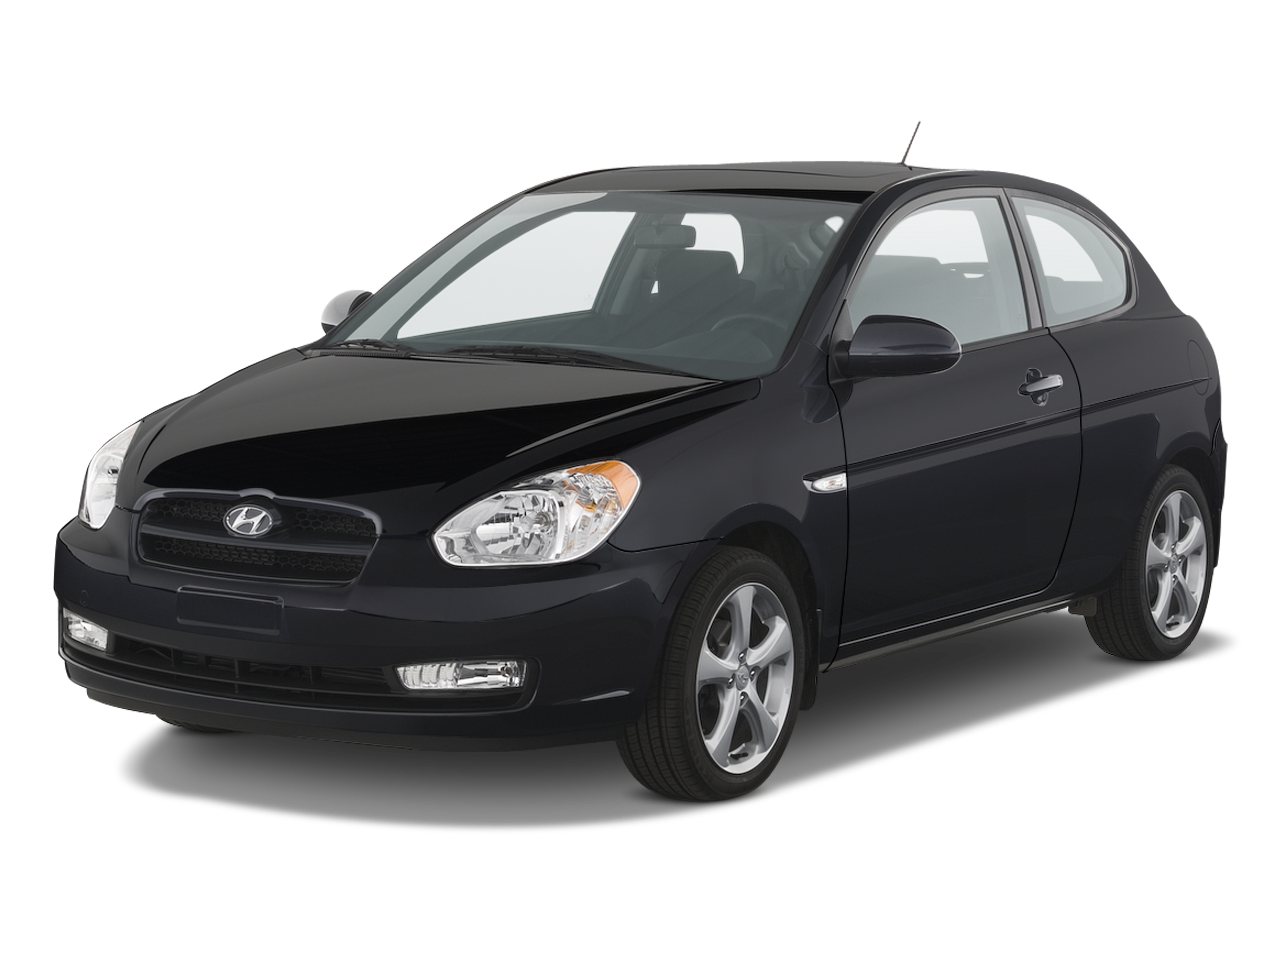 2008 hyundai accent se hyundai subcompact hatchback review automobile magazine. Black Bedroom Furniture Sets. Home Design Ideas